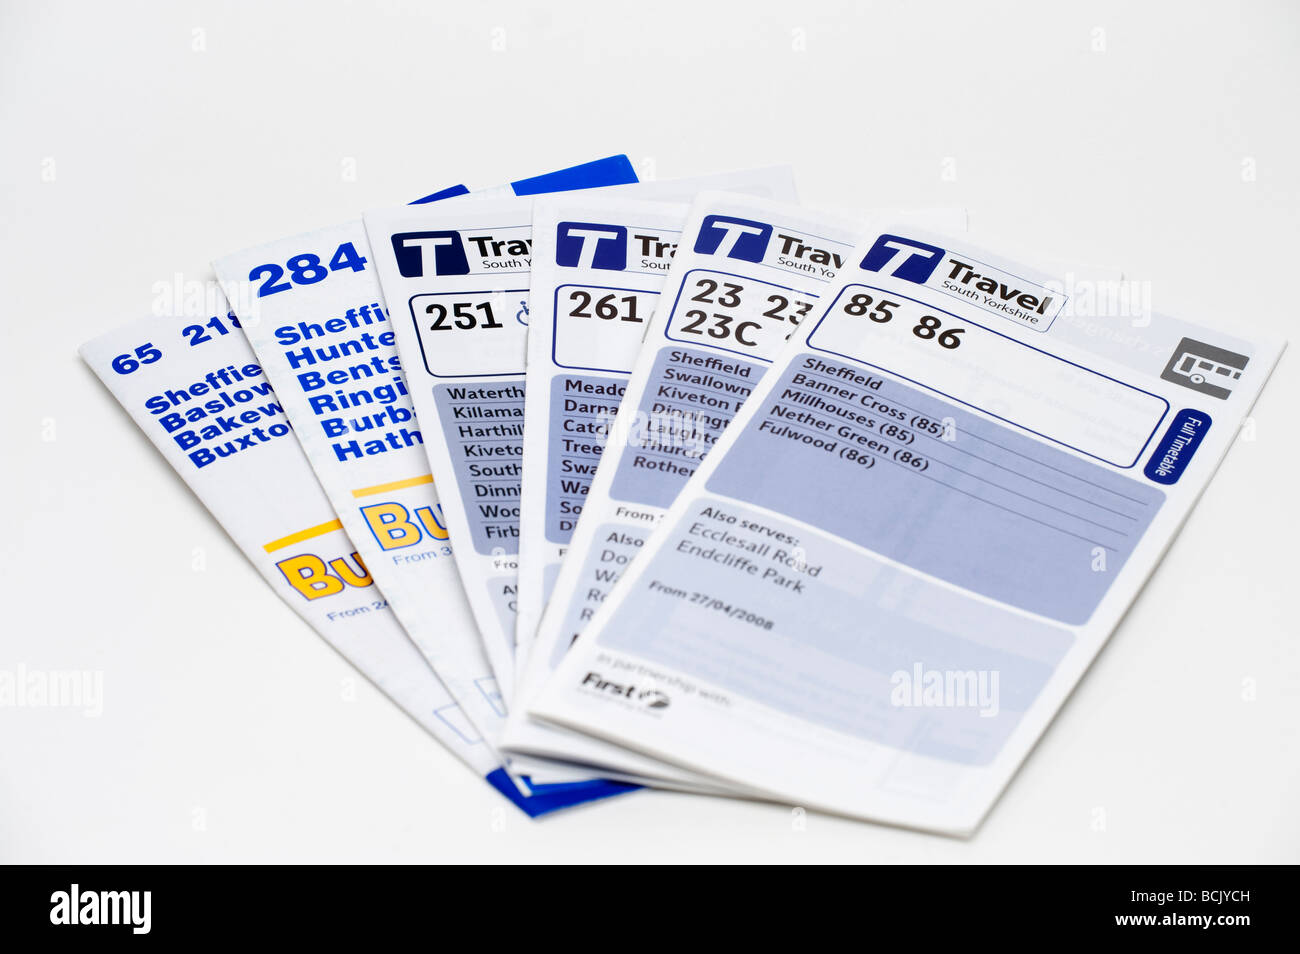 Bus timetable leaflets covering the 'Sheffield area' - Stock Image